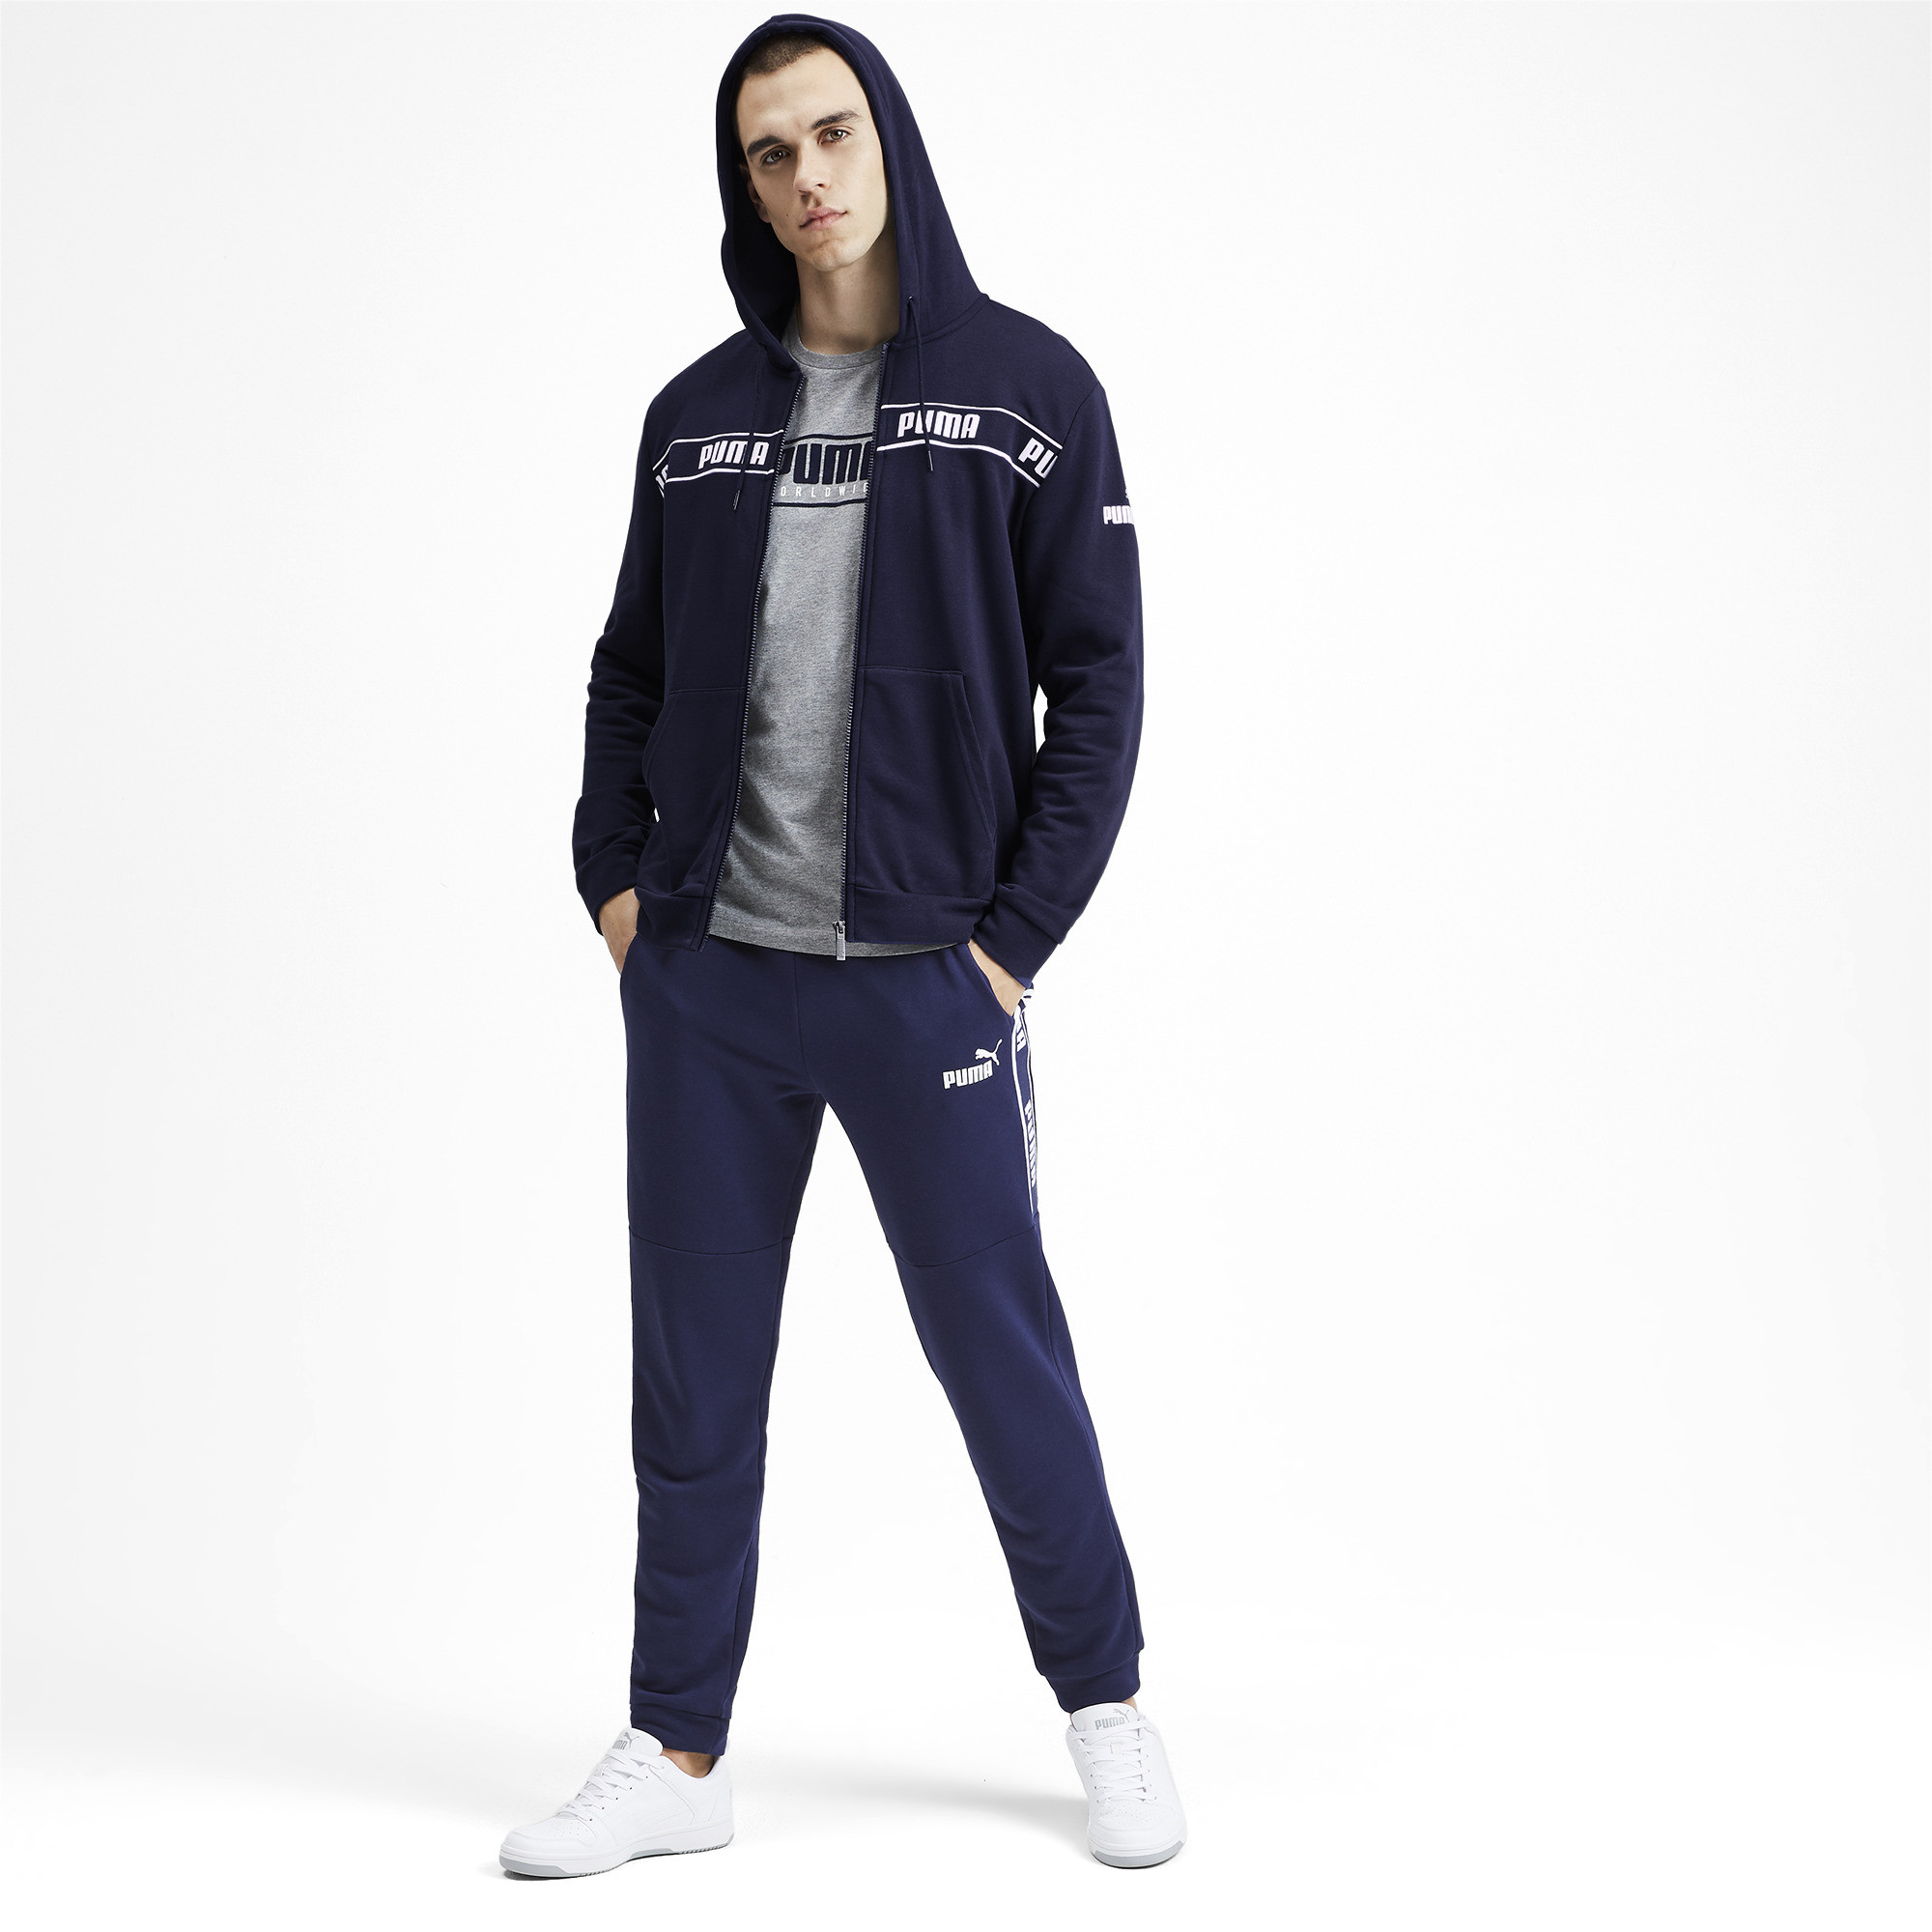 PUMA-Amplified-Men-039-s-Hooded-Jacket-Men-Sweat-Basics thumbnail 6